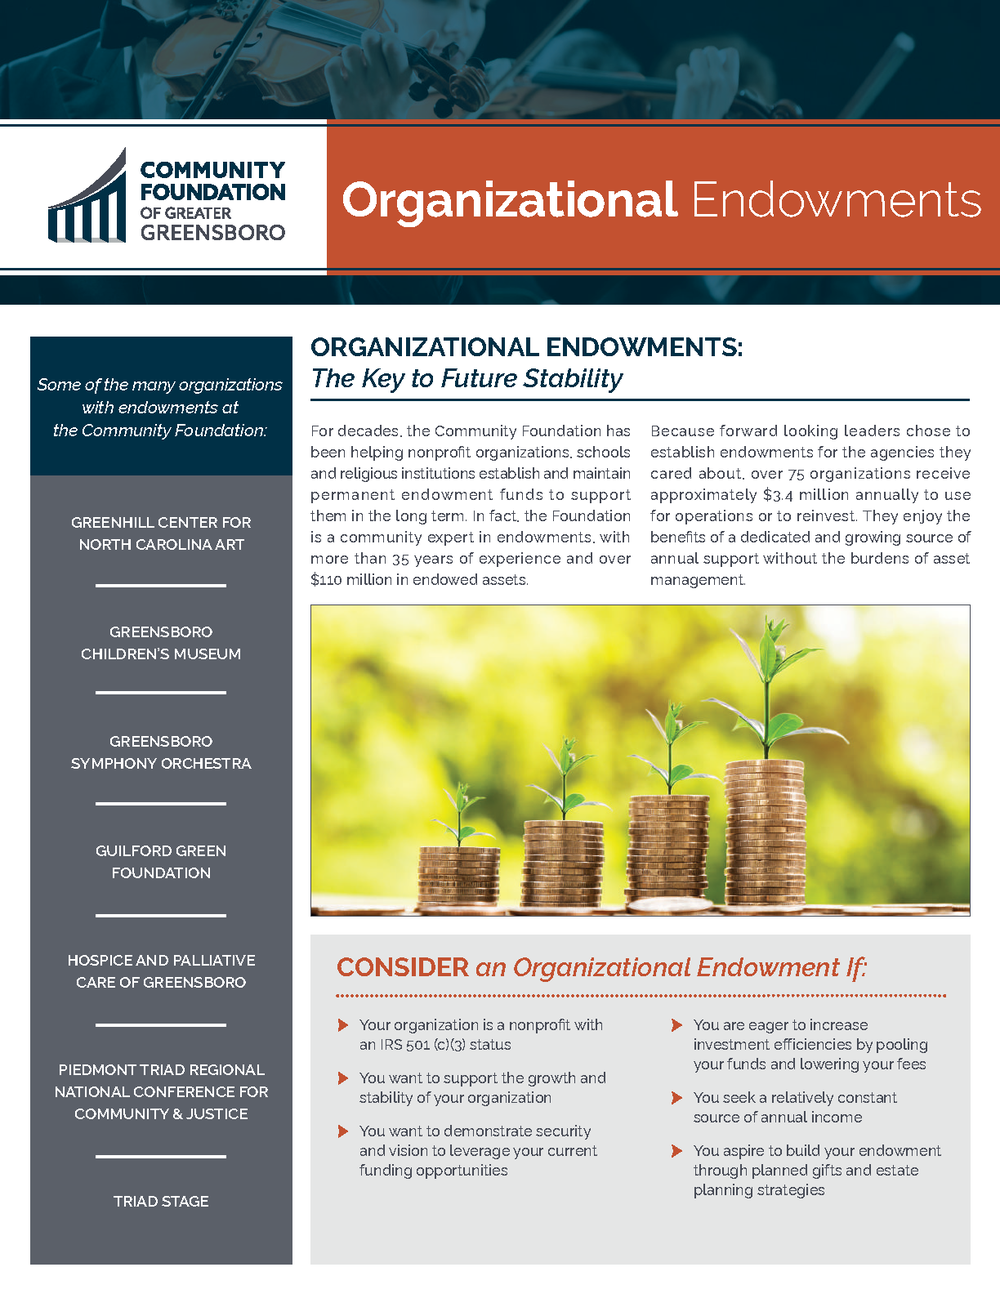 Learn More About Organizational Endowments -